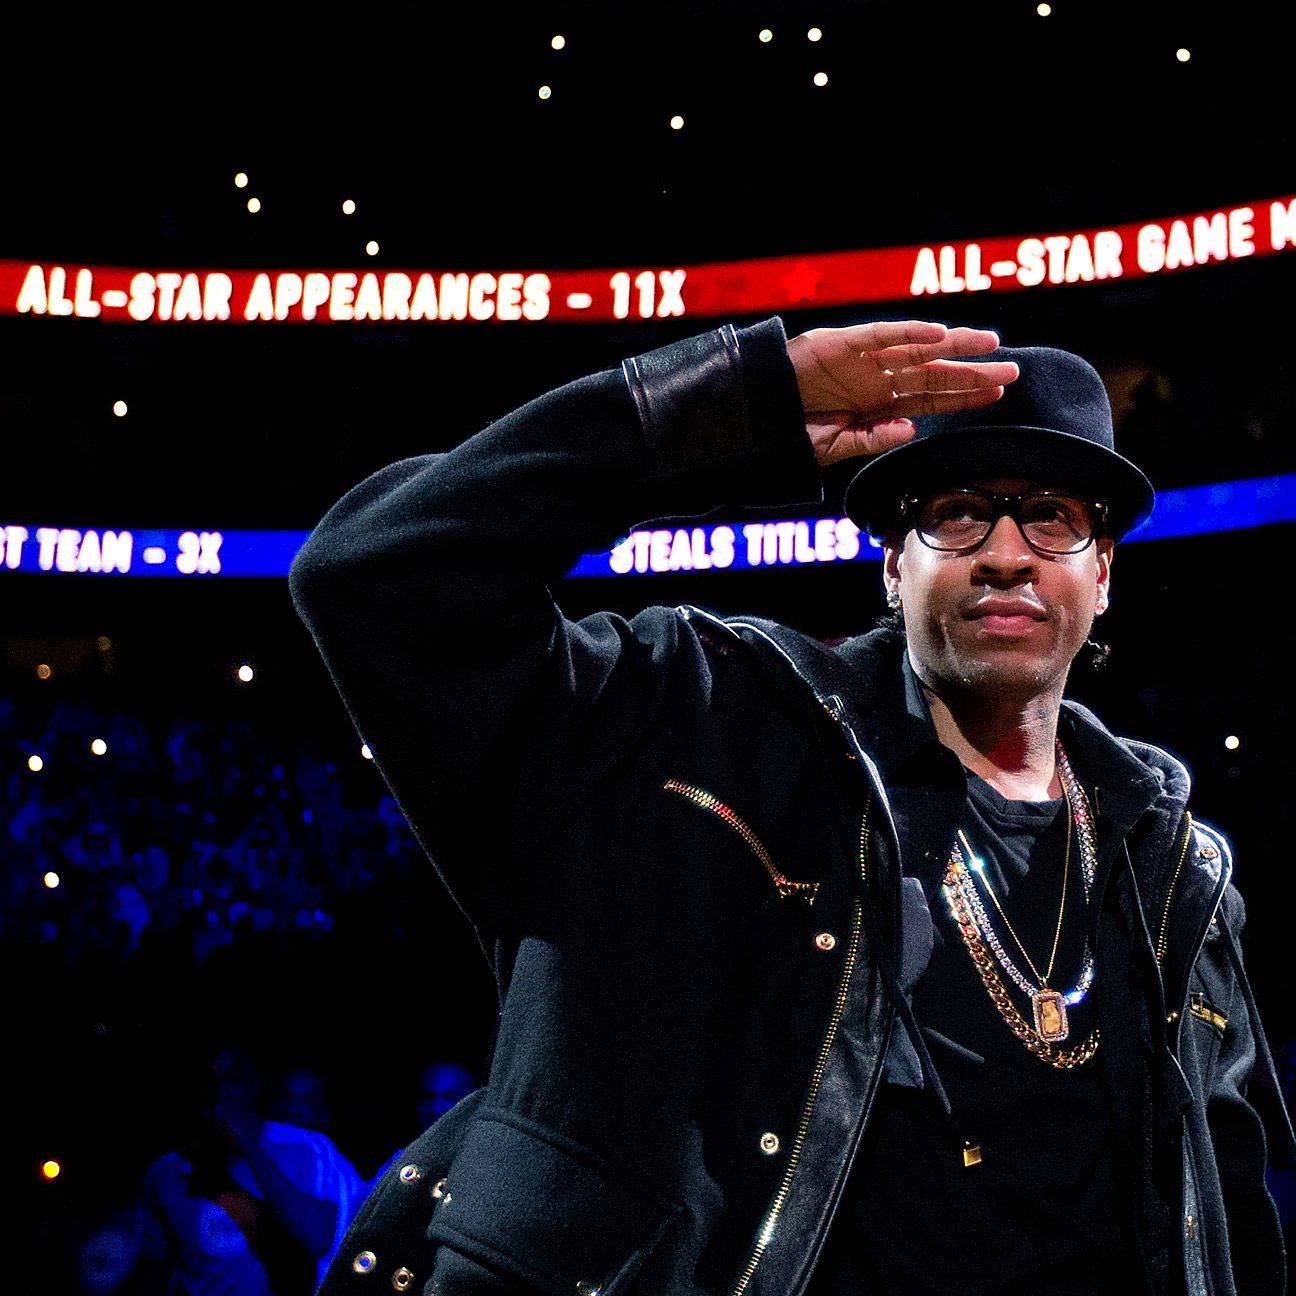 Allen Iverson's No. 3 retired by Philadelphia 76ers